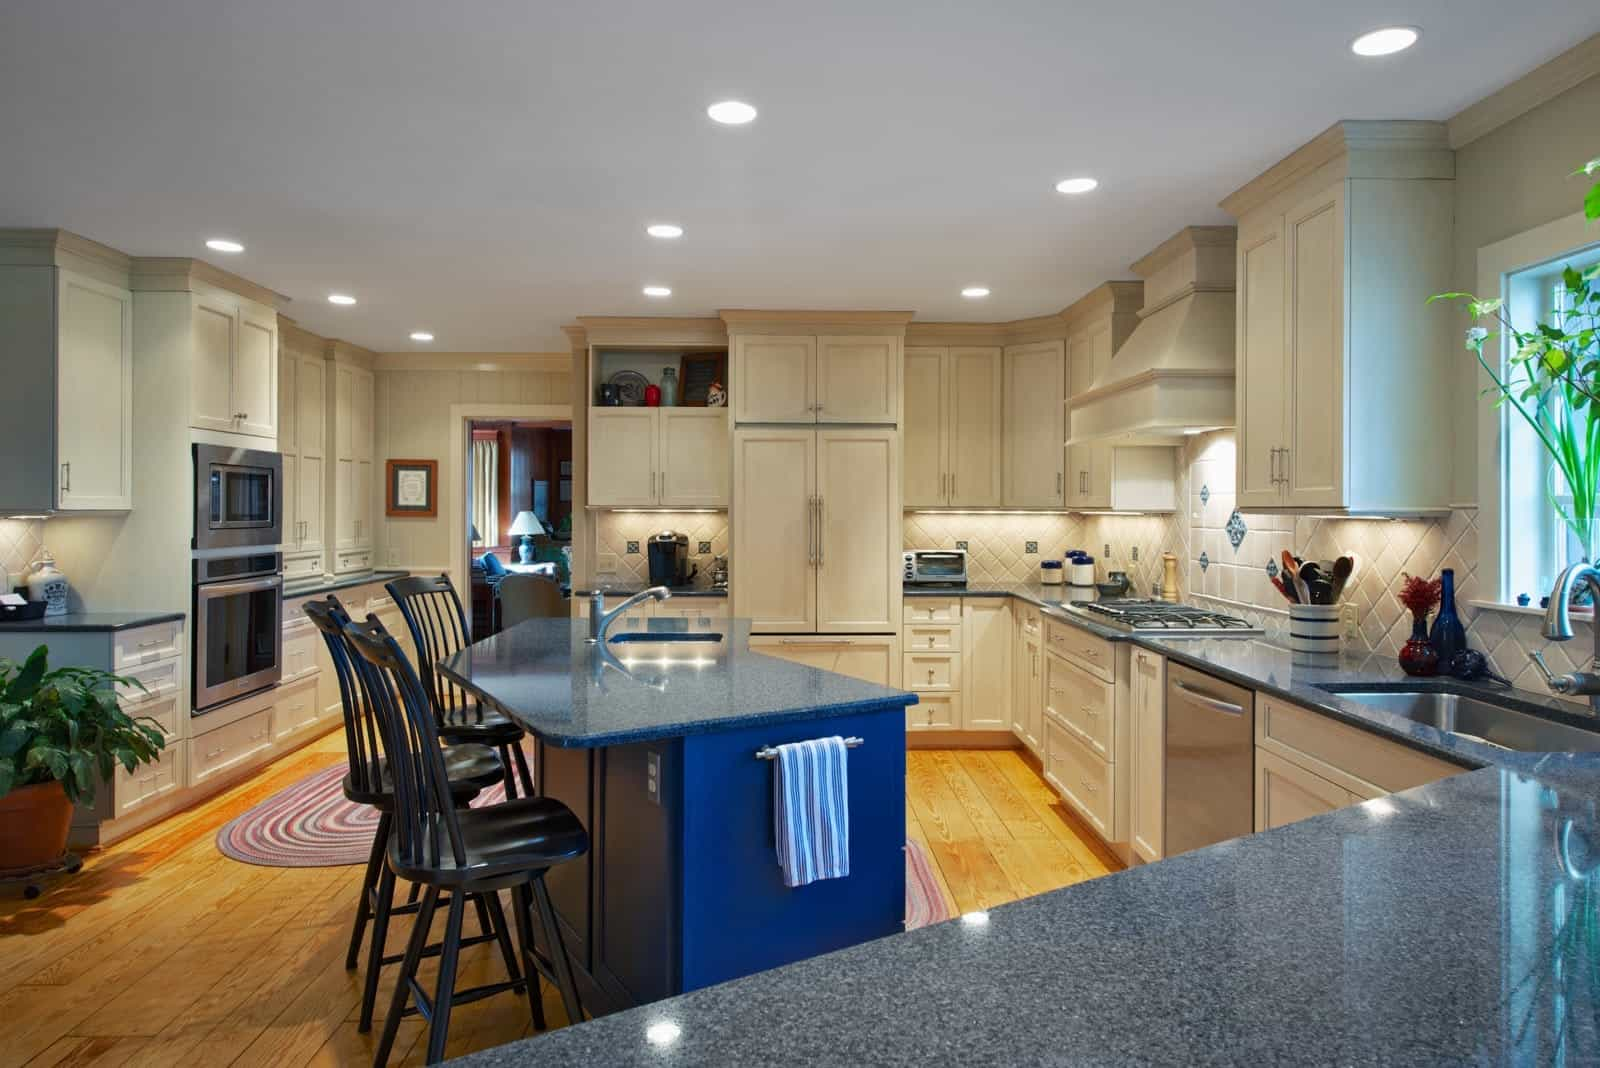 Warm Hardwood Floors In Transitional Kitchen (Image 11 of 12)